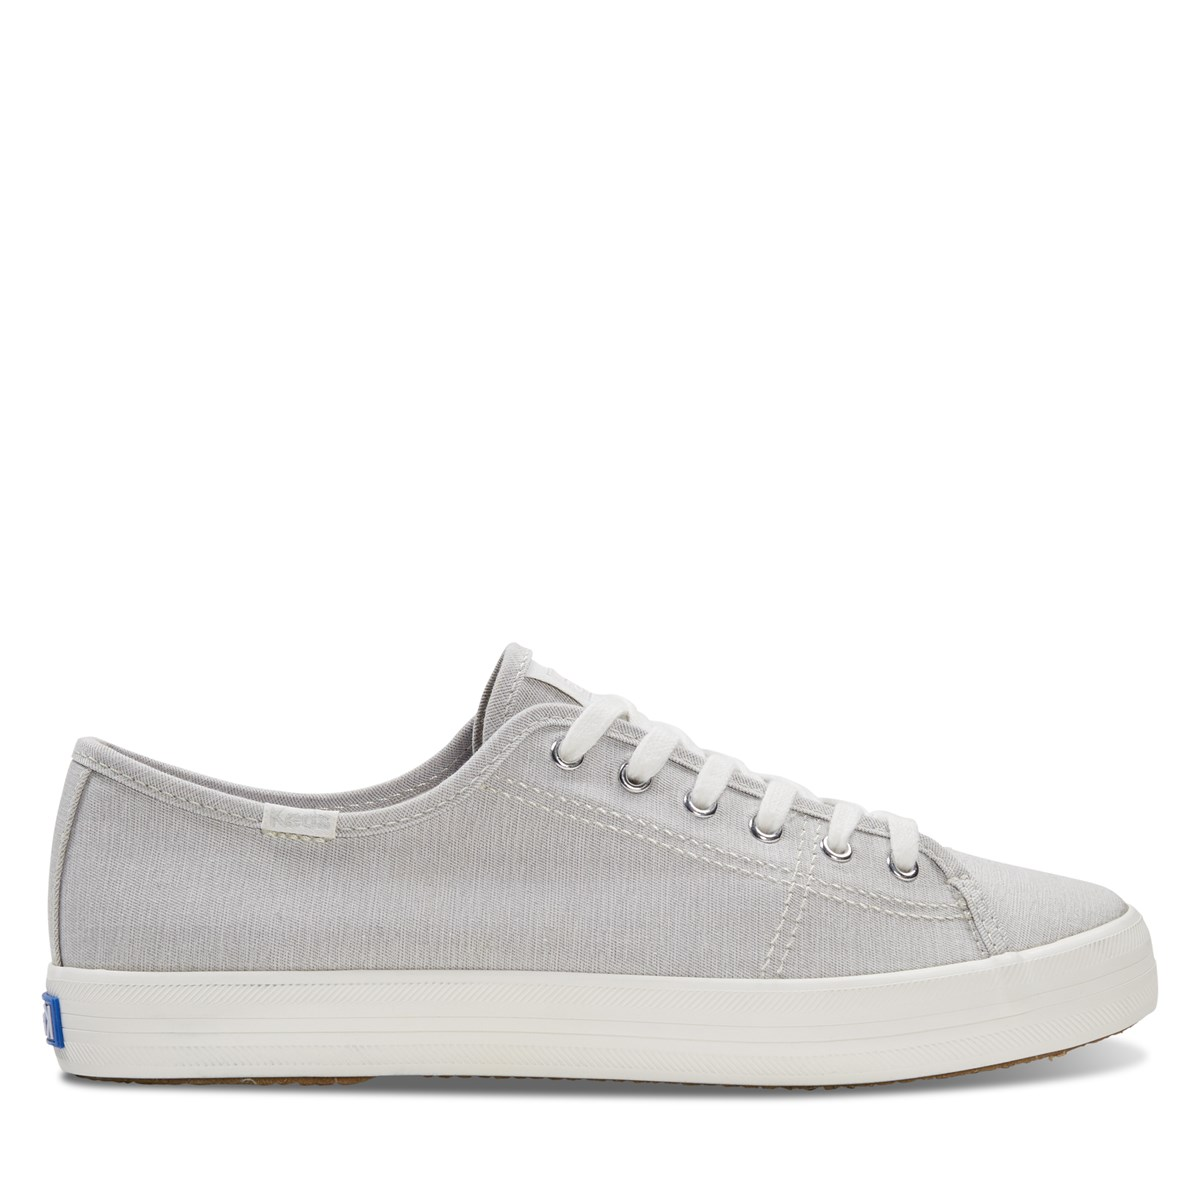 Women's Kickstart Mini Sneakers in Light Grey